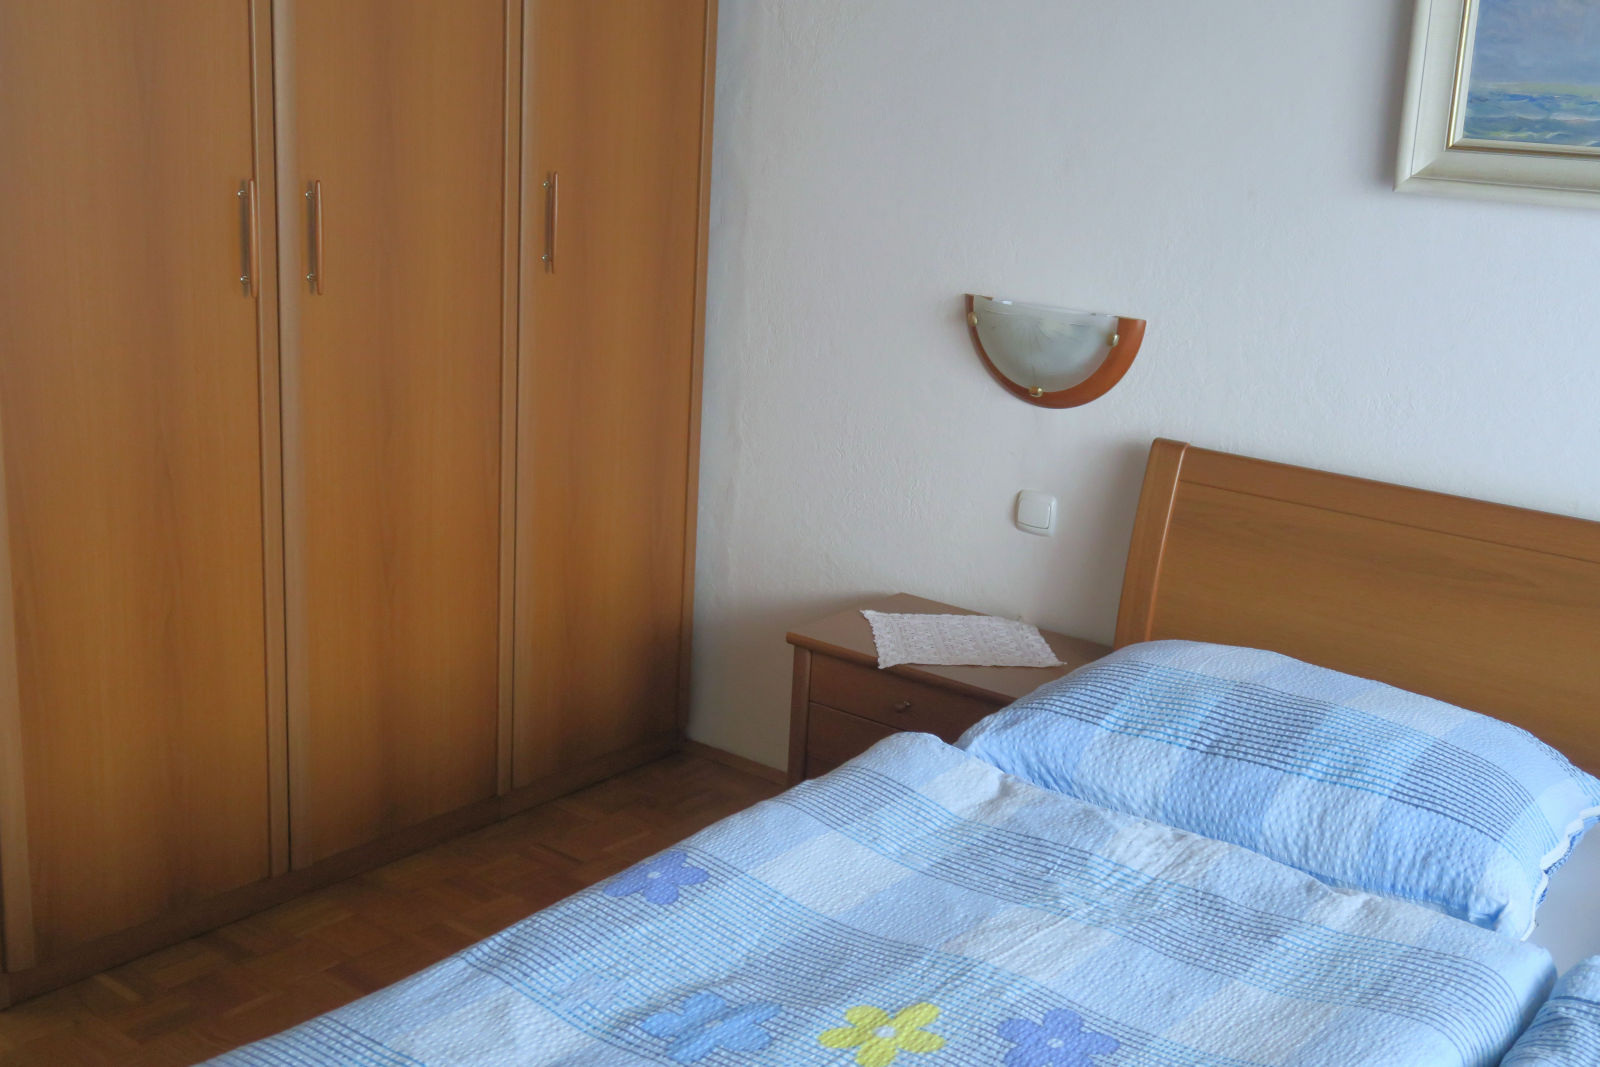 A bed and a closet bedroom of the Fine Stay apartment in Lake Bled, Slovenia